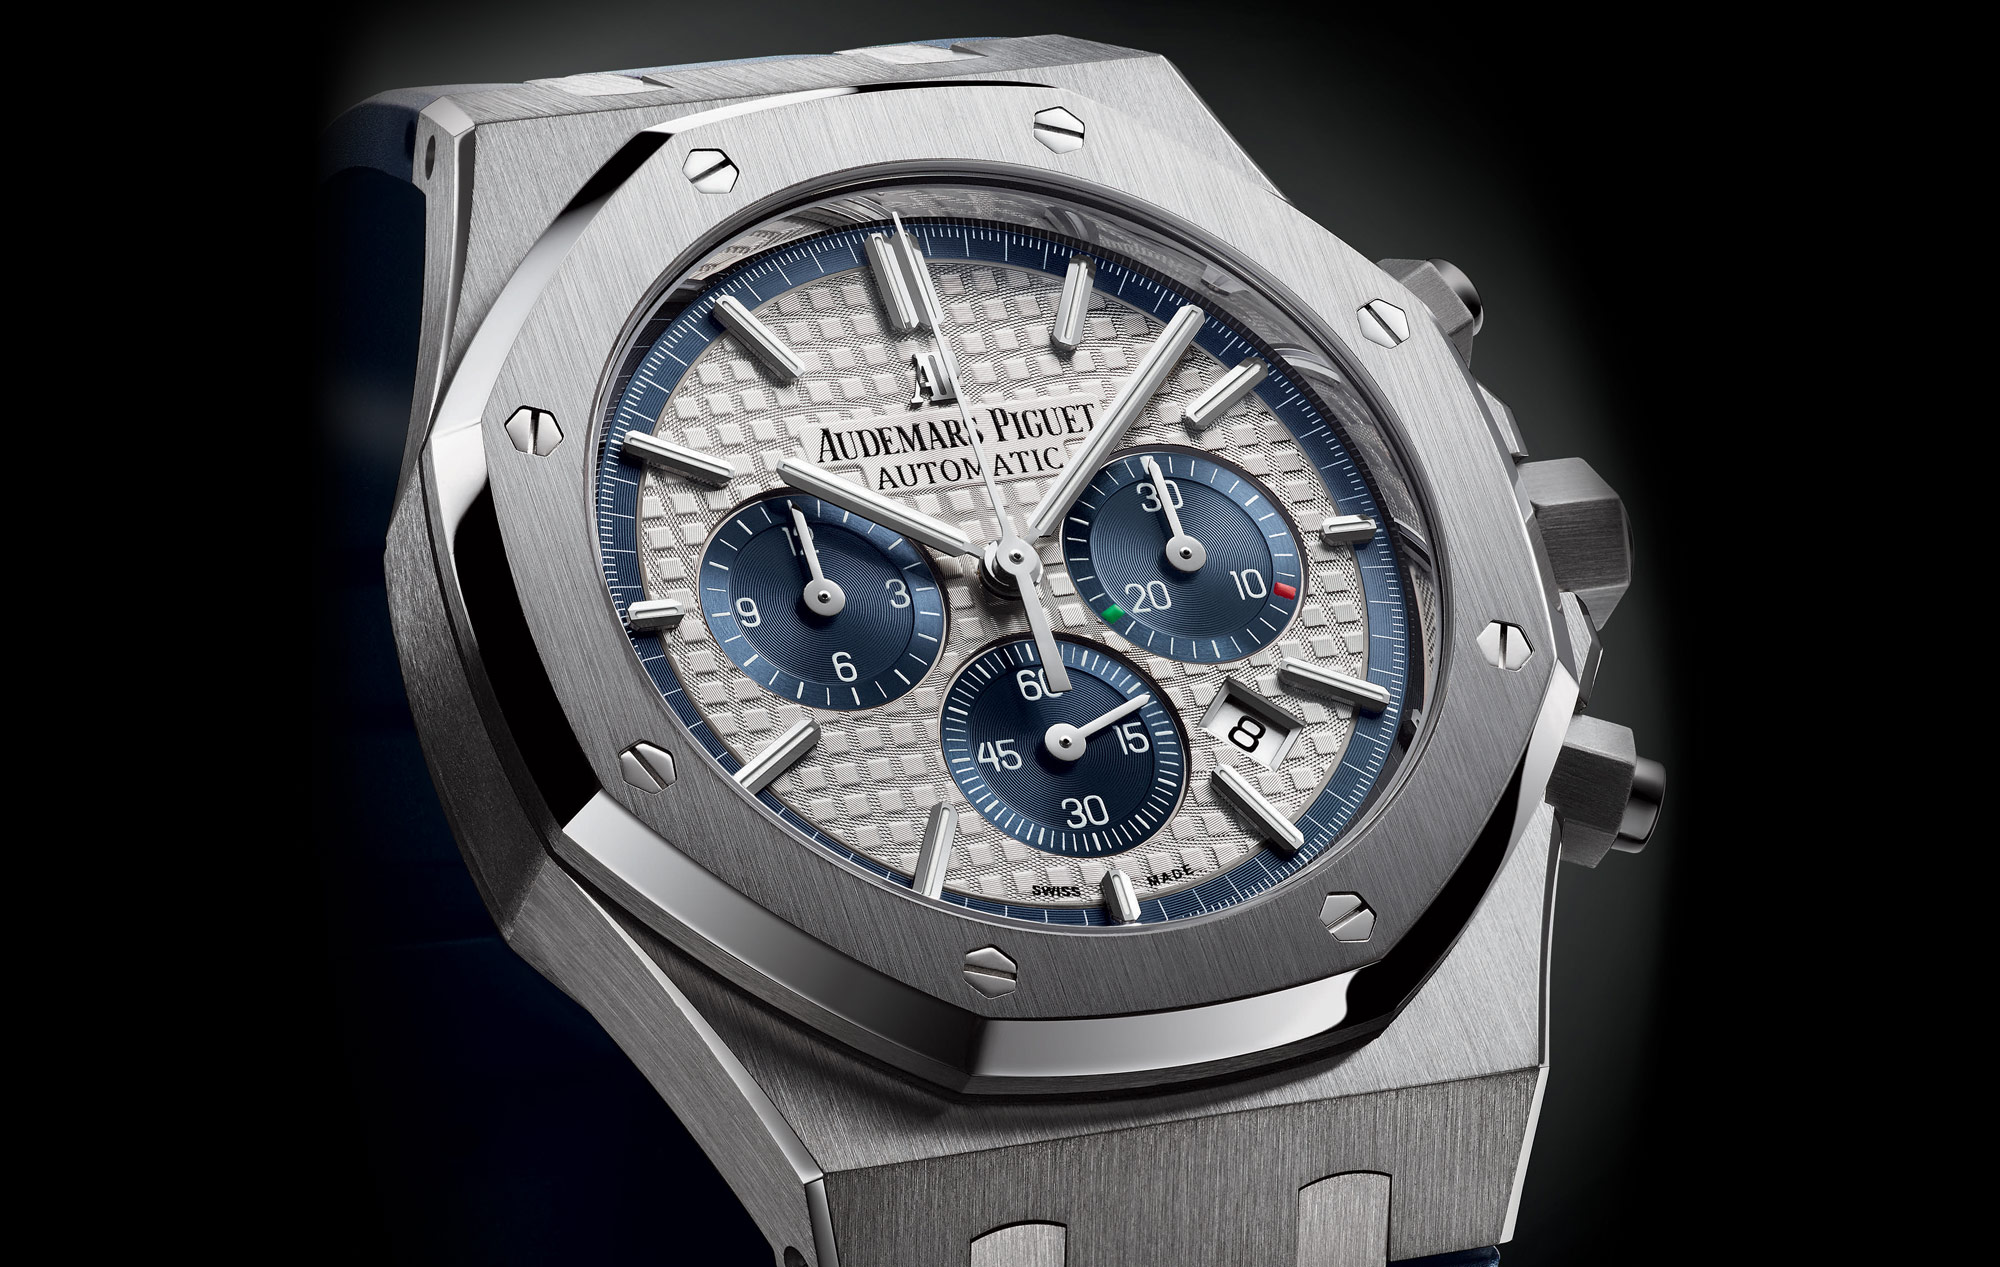 Audemars Piguet Classic Royal Oak